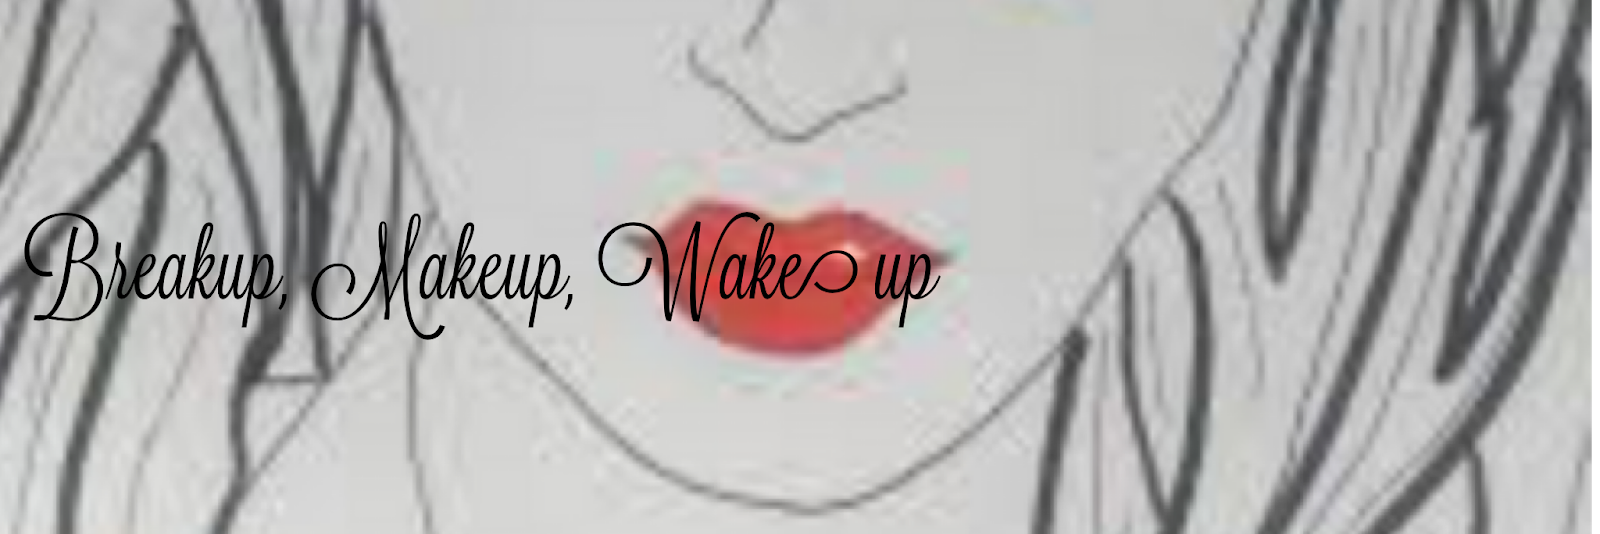 BREAKUP, MAKE UP, WAKE UP